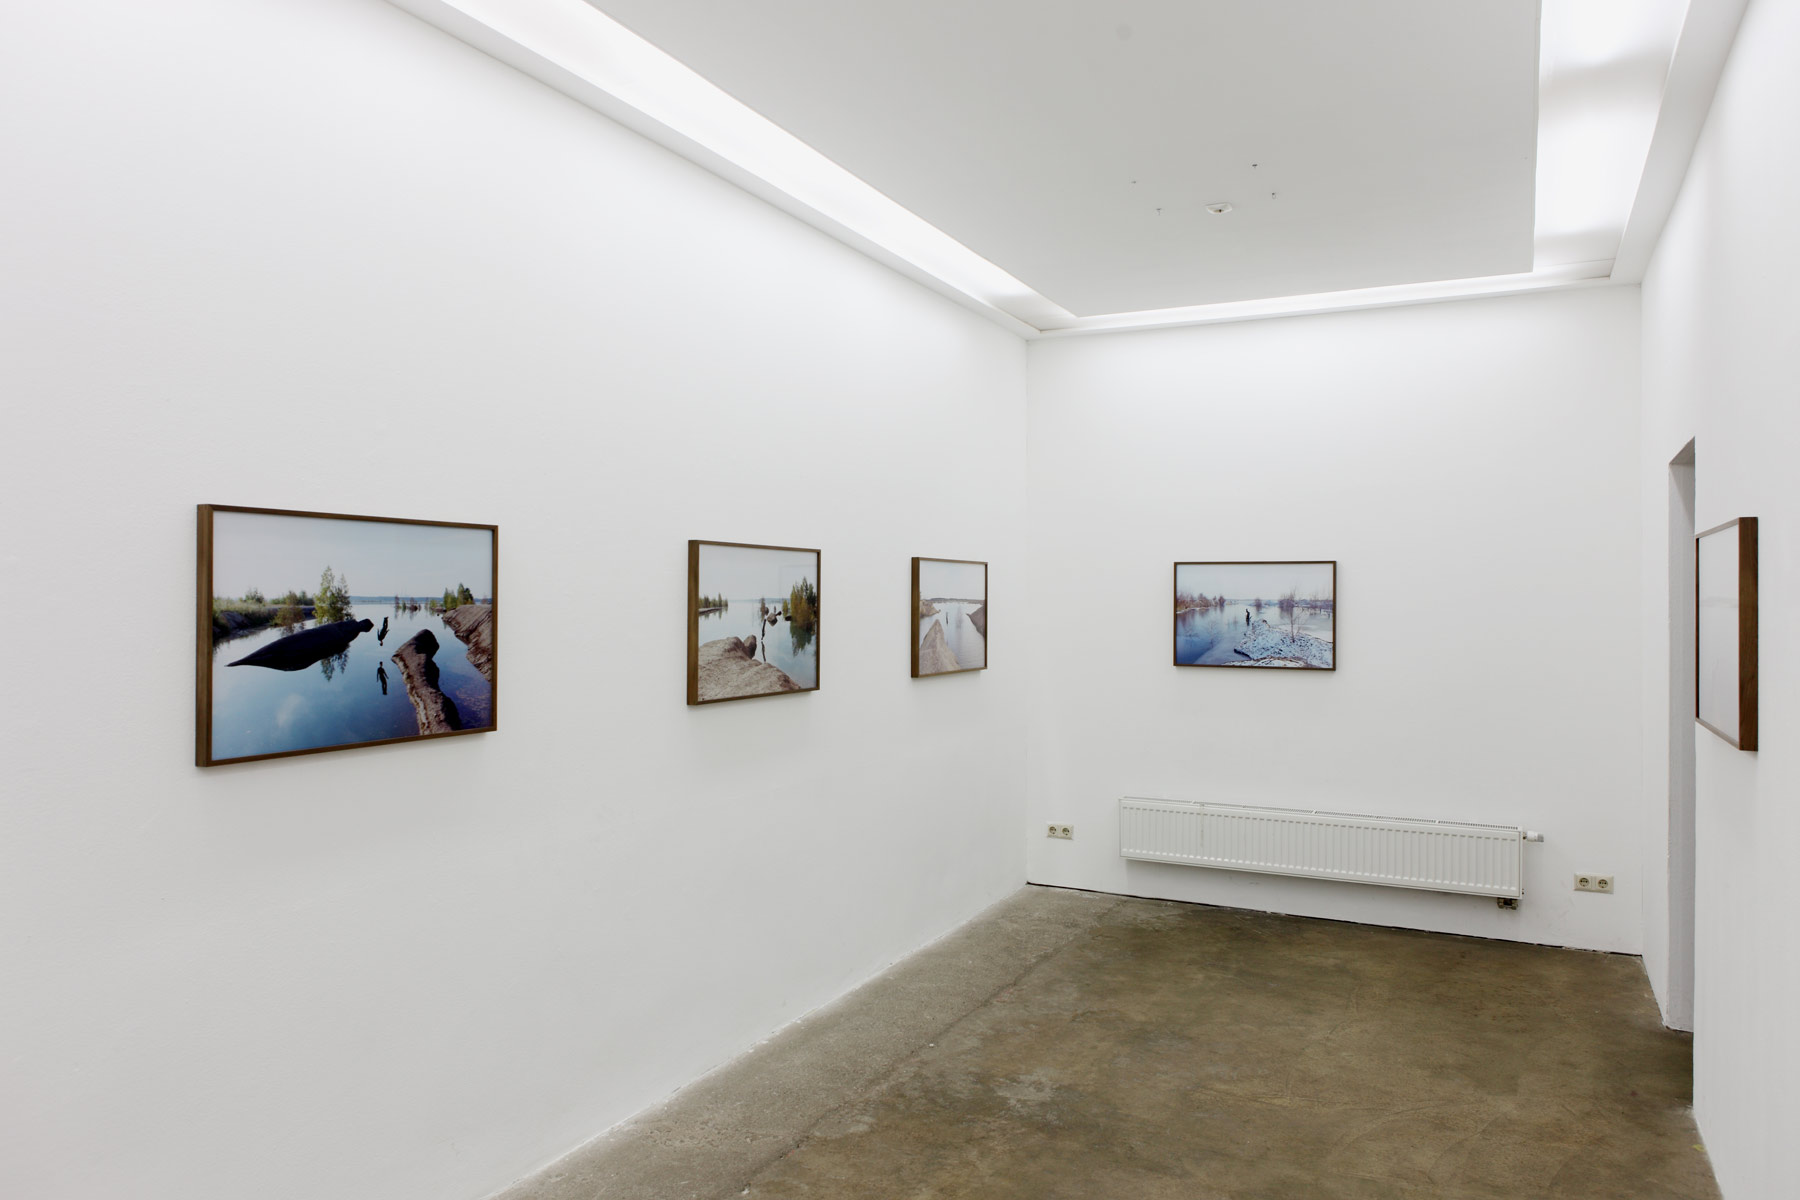 Stumpf-Installation-View-7,-Islands,-2014,-Galerie-Kleindienst,-Leipzig.jpg